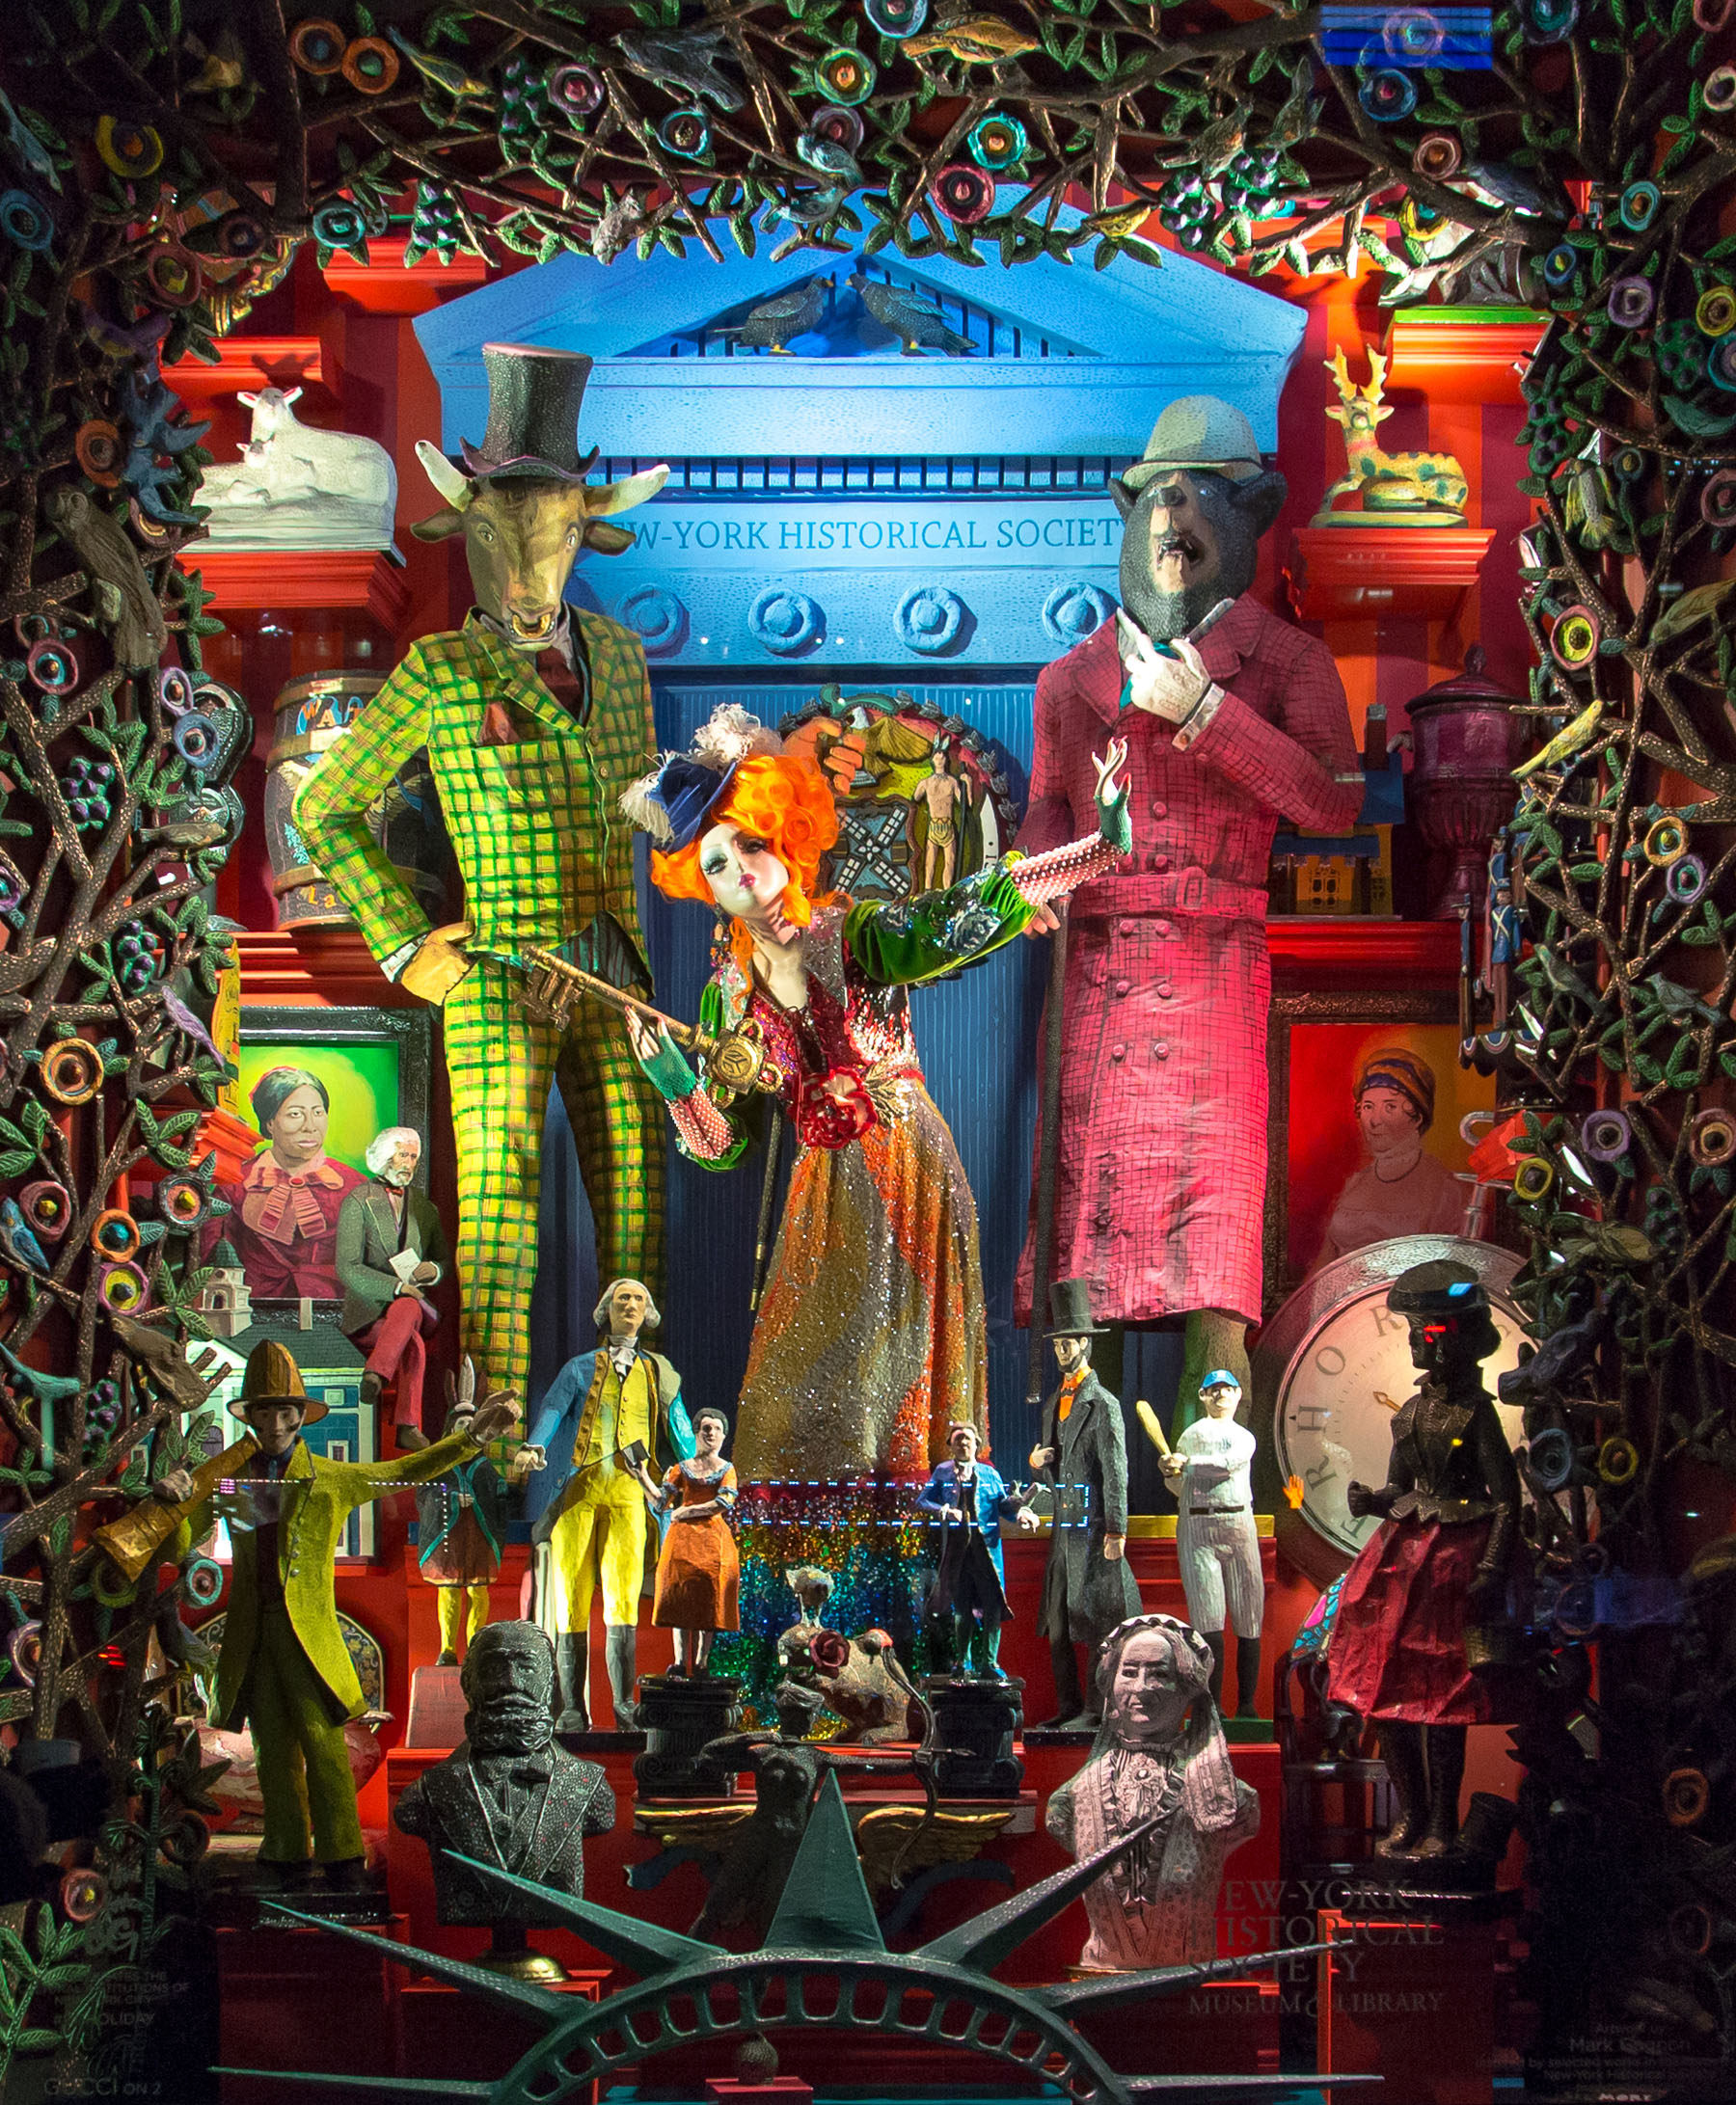 Bergdorf-Goodman-holiday-windows-2017-the-impression-01.jpg